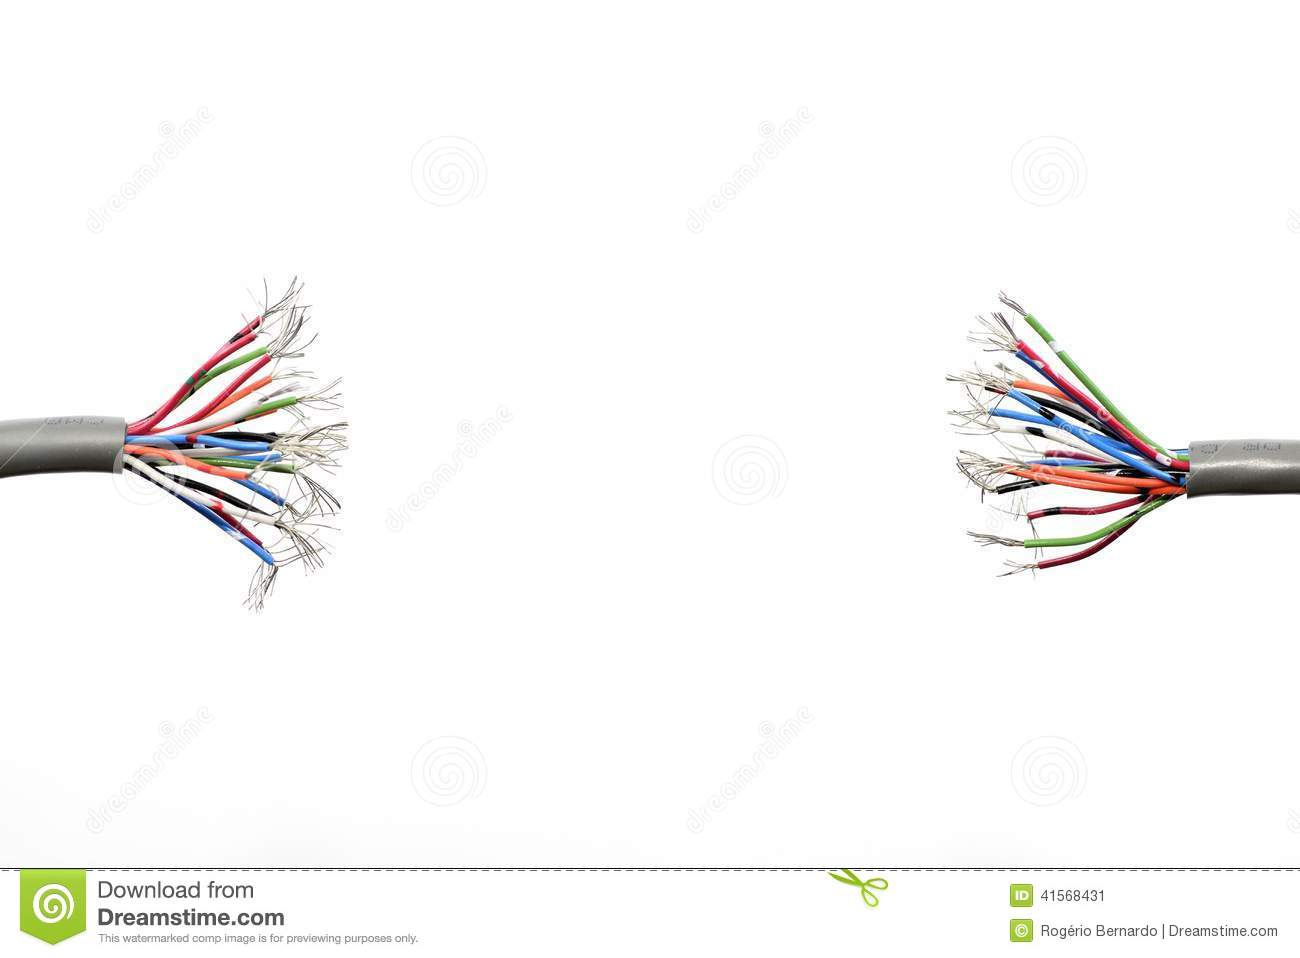 Wire ends stock image. Image of wires, frayed, isolated - 41568431